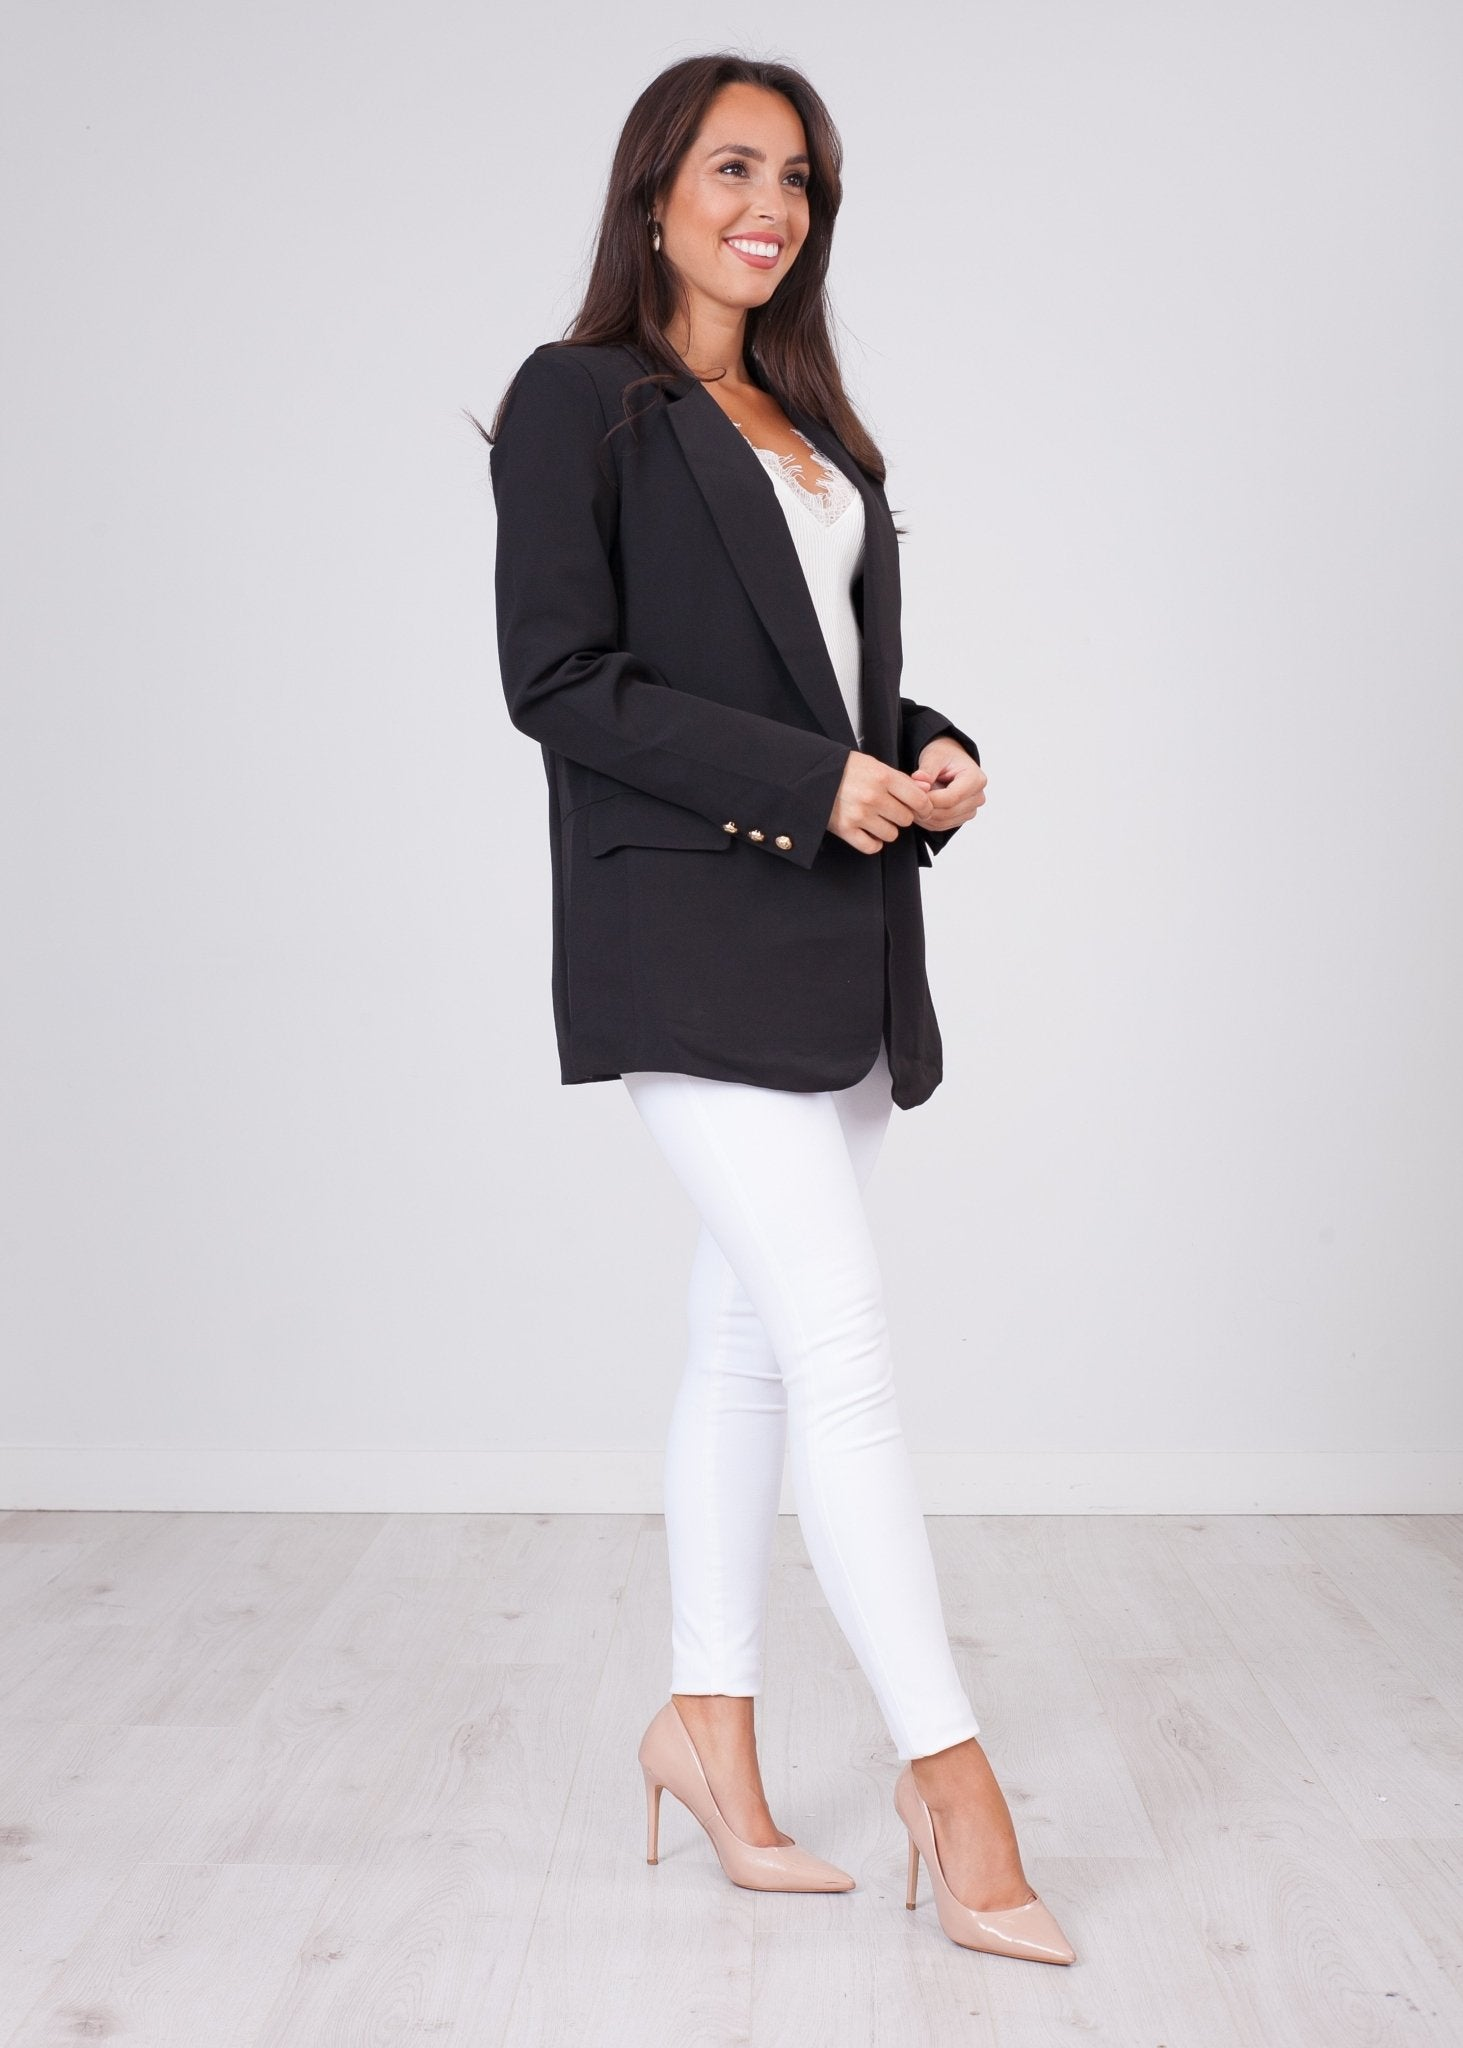 Arabella Black Boyfriend Blazer - The Walk in Wardrobe